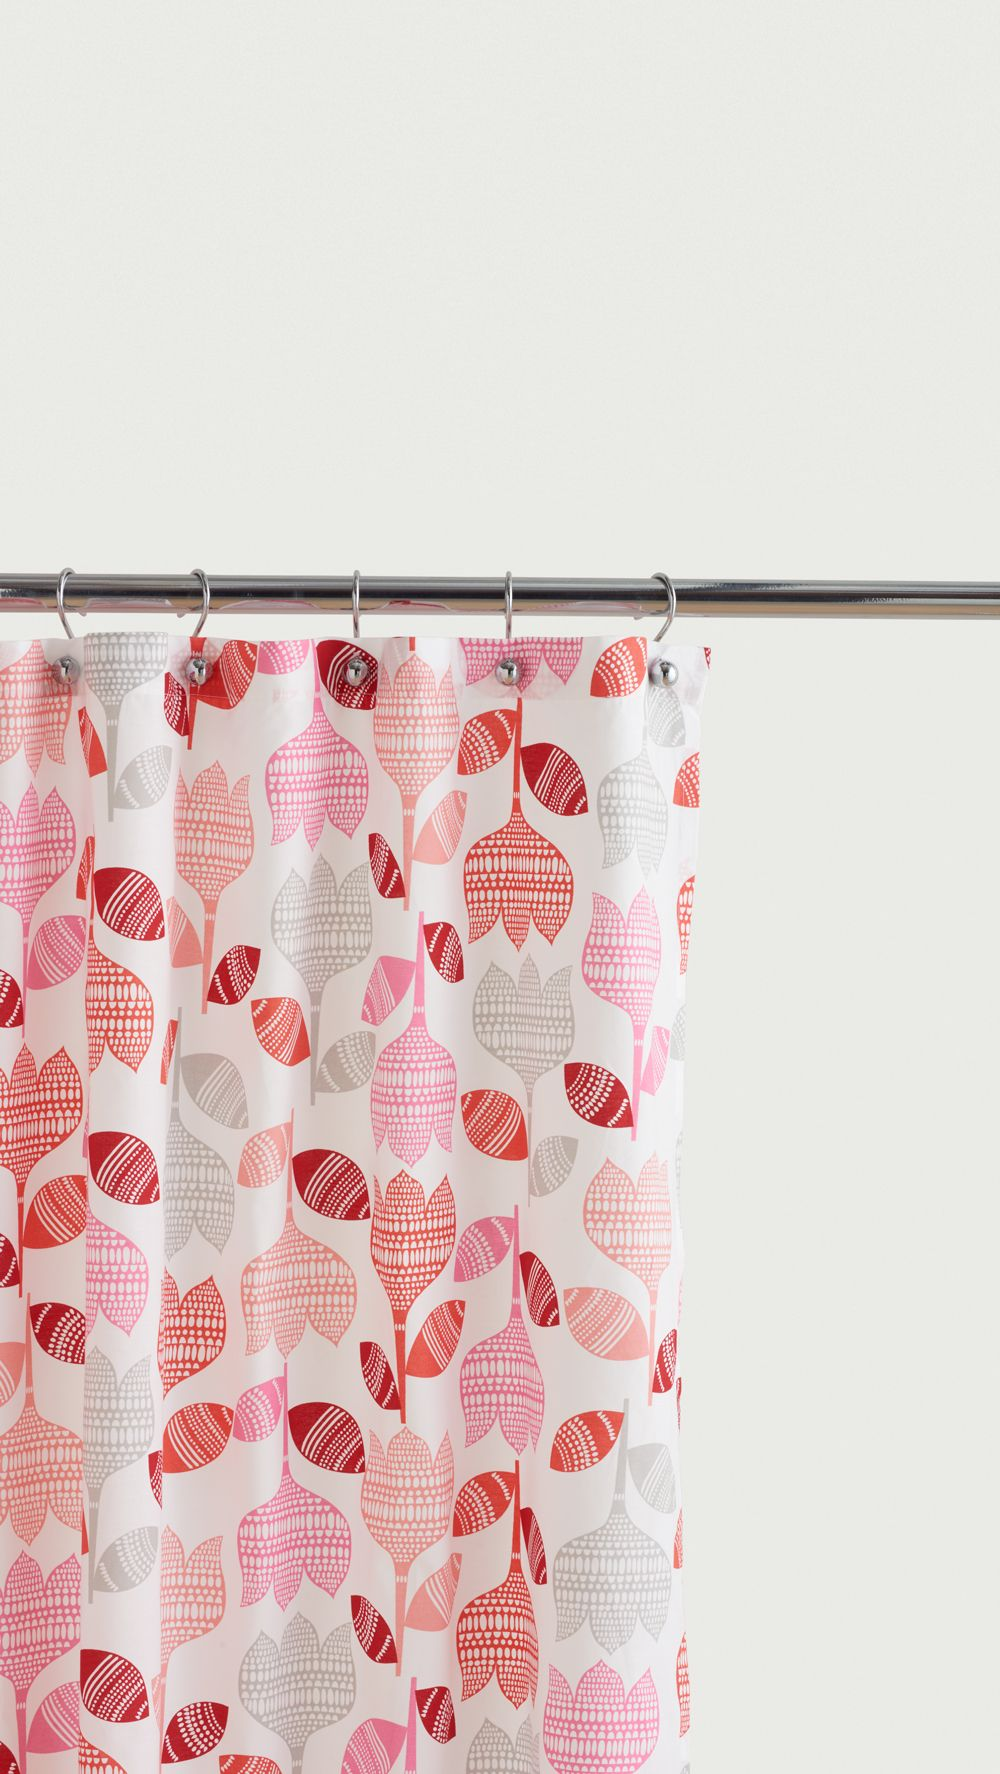 Hannasoft Tulip Shower Curtain Tulip Shower Curtain Shower